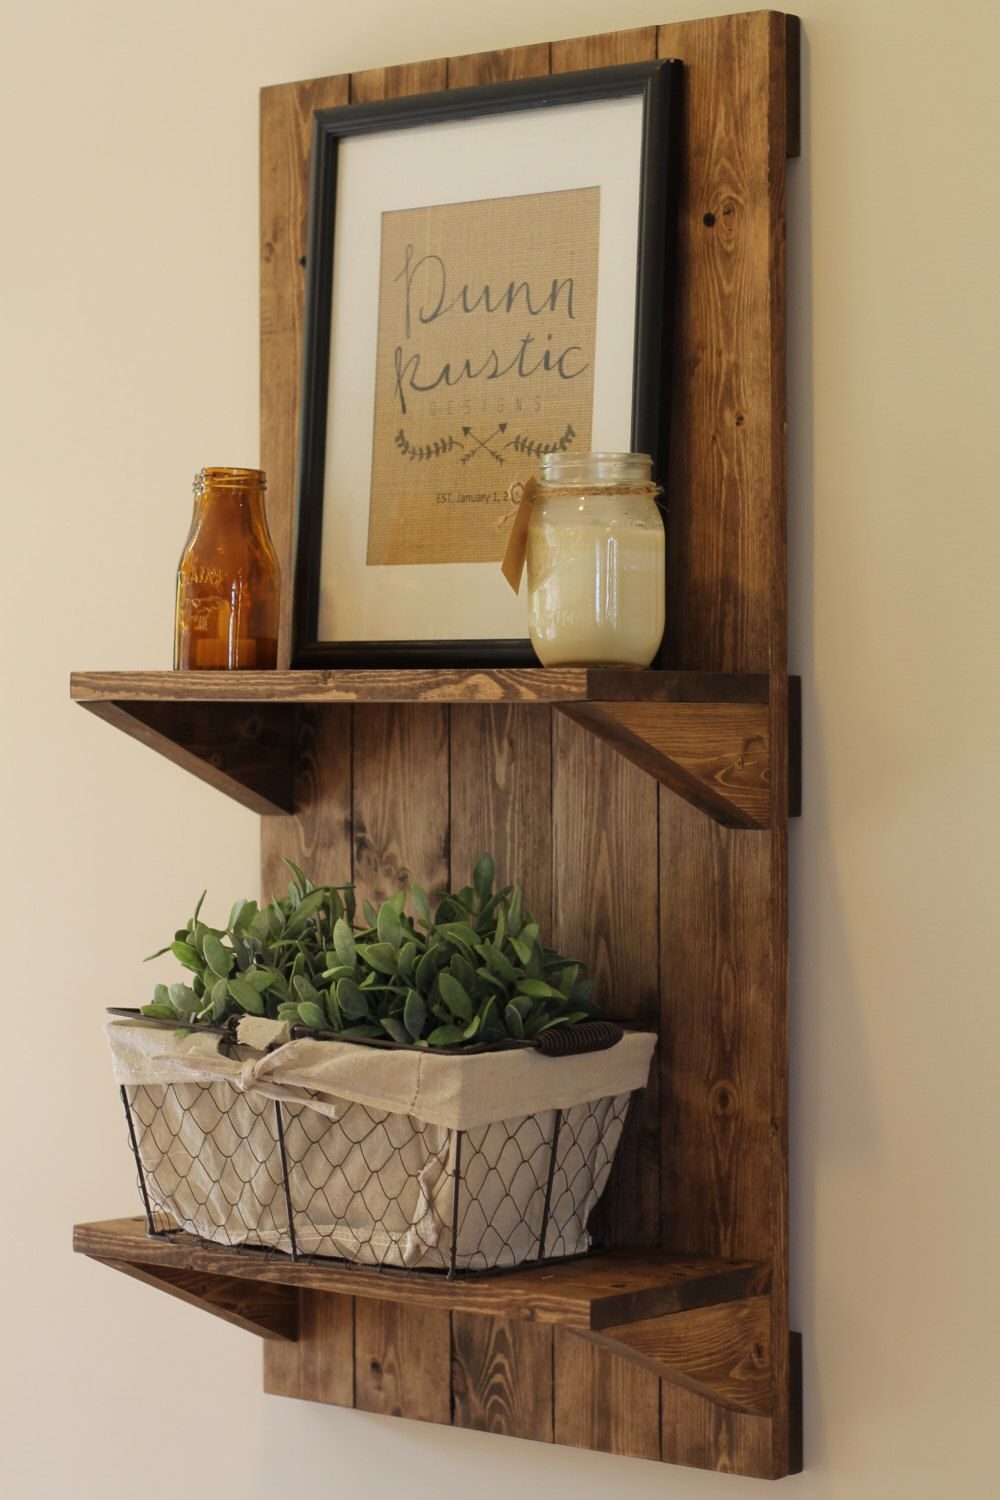 Encouraging Bathroom Vertical Rustic Wooden Rustic Rustic Wooden Home Wall Bathroom Gift Vertical Rustic Wooden Rustic Rustic Wooden Diy Wooden Shelves Bathroom Rustic Wooden Shelves bathroom Wooden Shelves For Bathroom